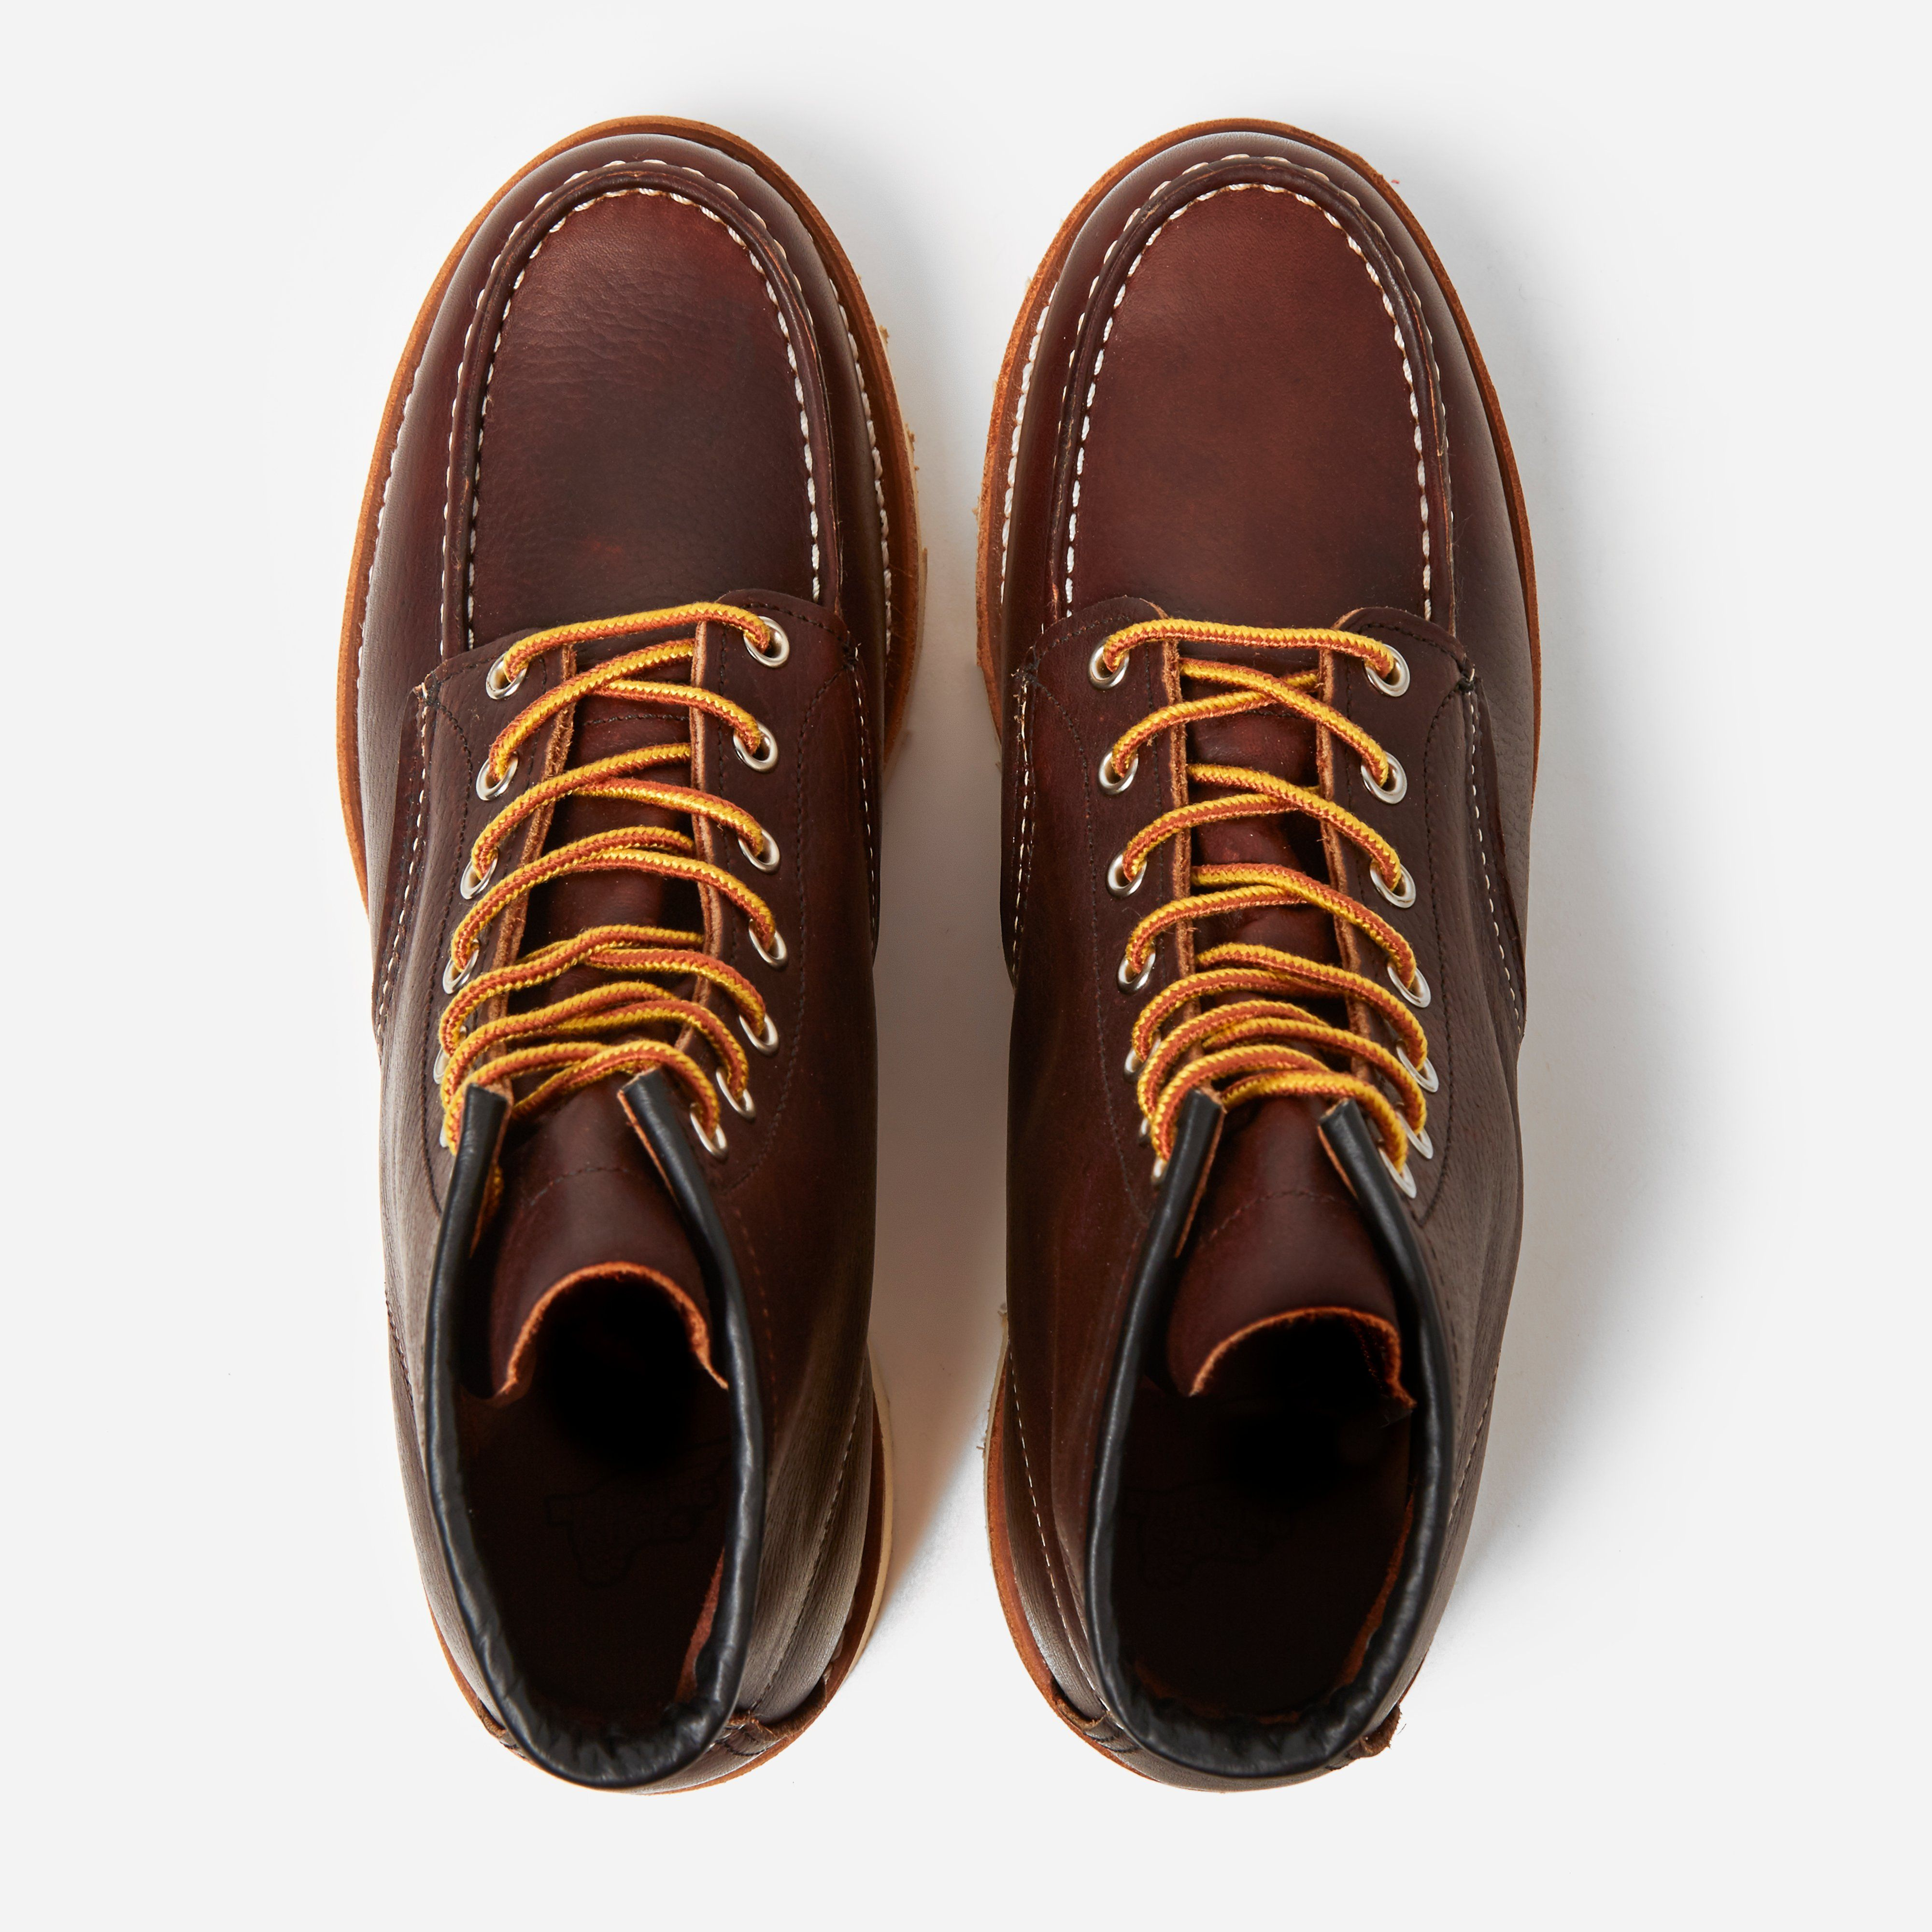 "Red Wing 08138 6"" Moc Toe Boot"